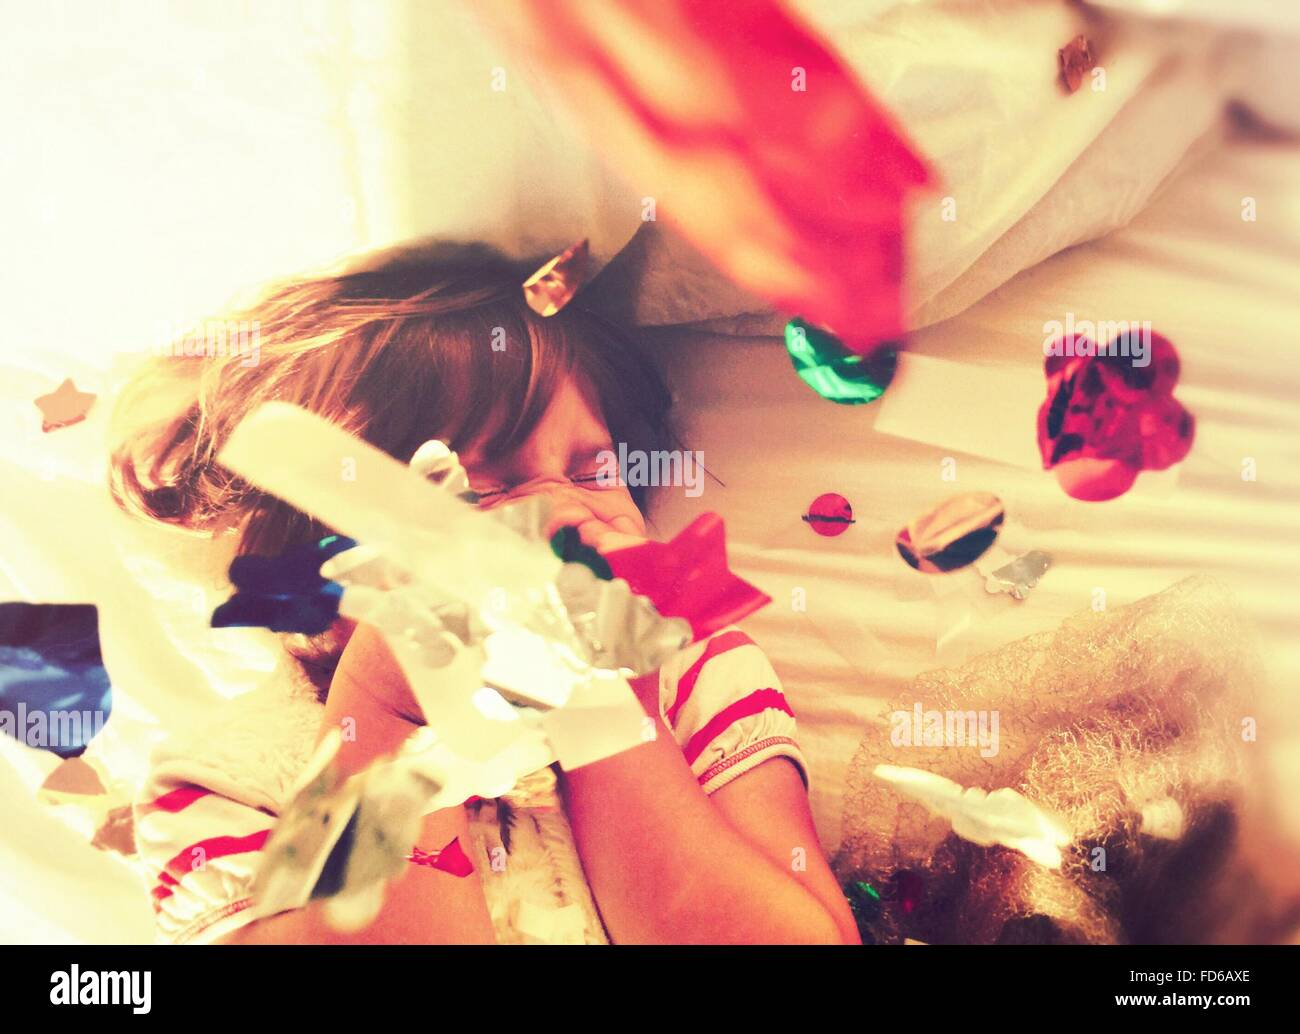 Girl Lying On Bed Tossing Confetti And Laughing - Stock Image